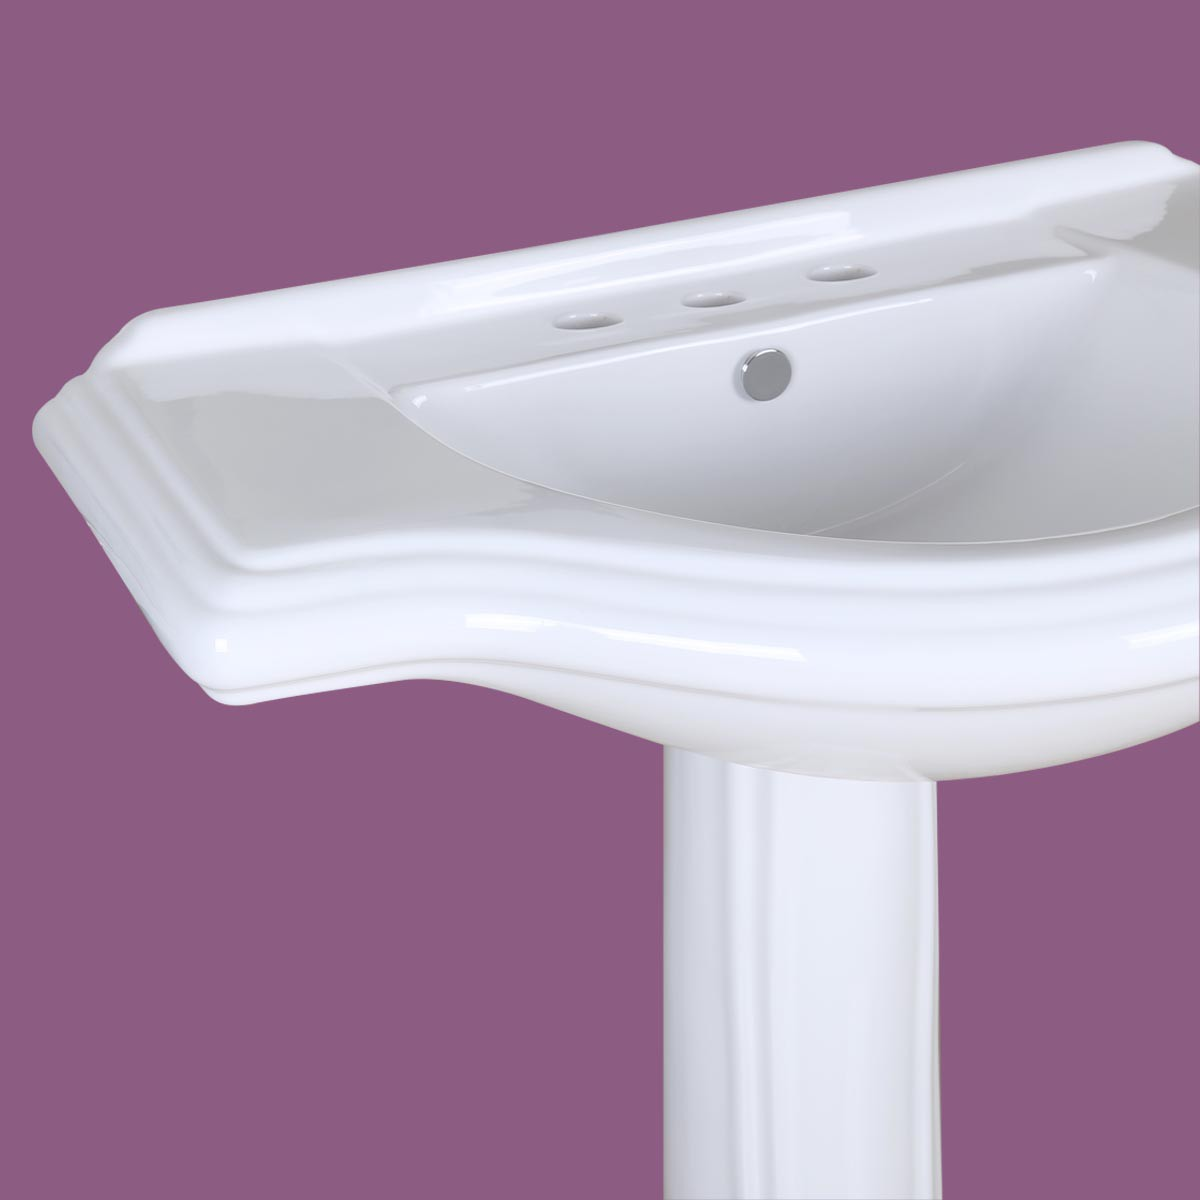 Large Bathroom Porcelain Pedestal Sink